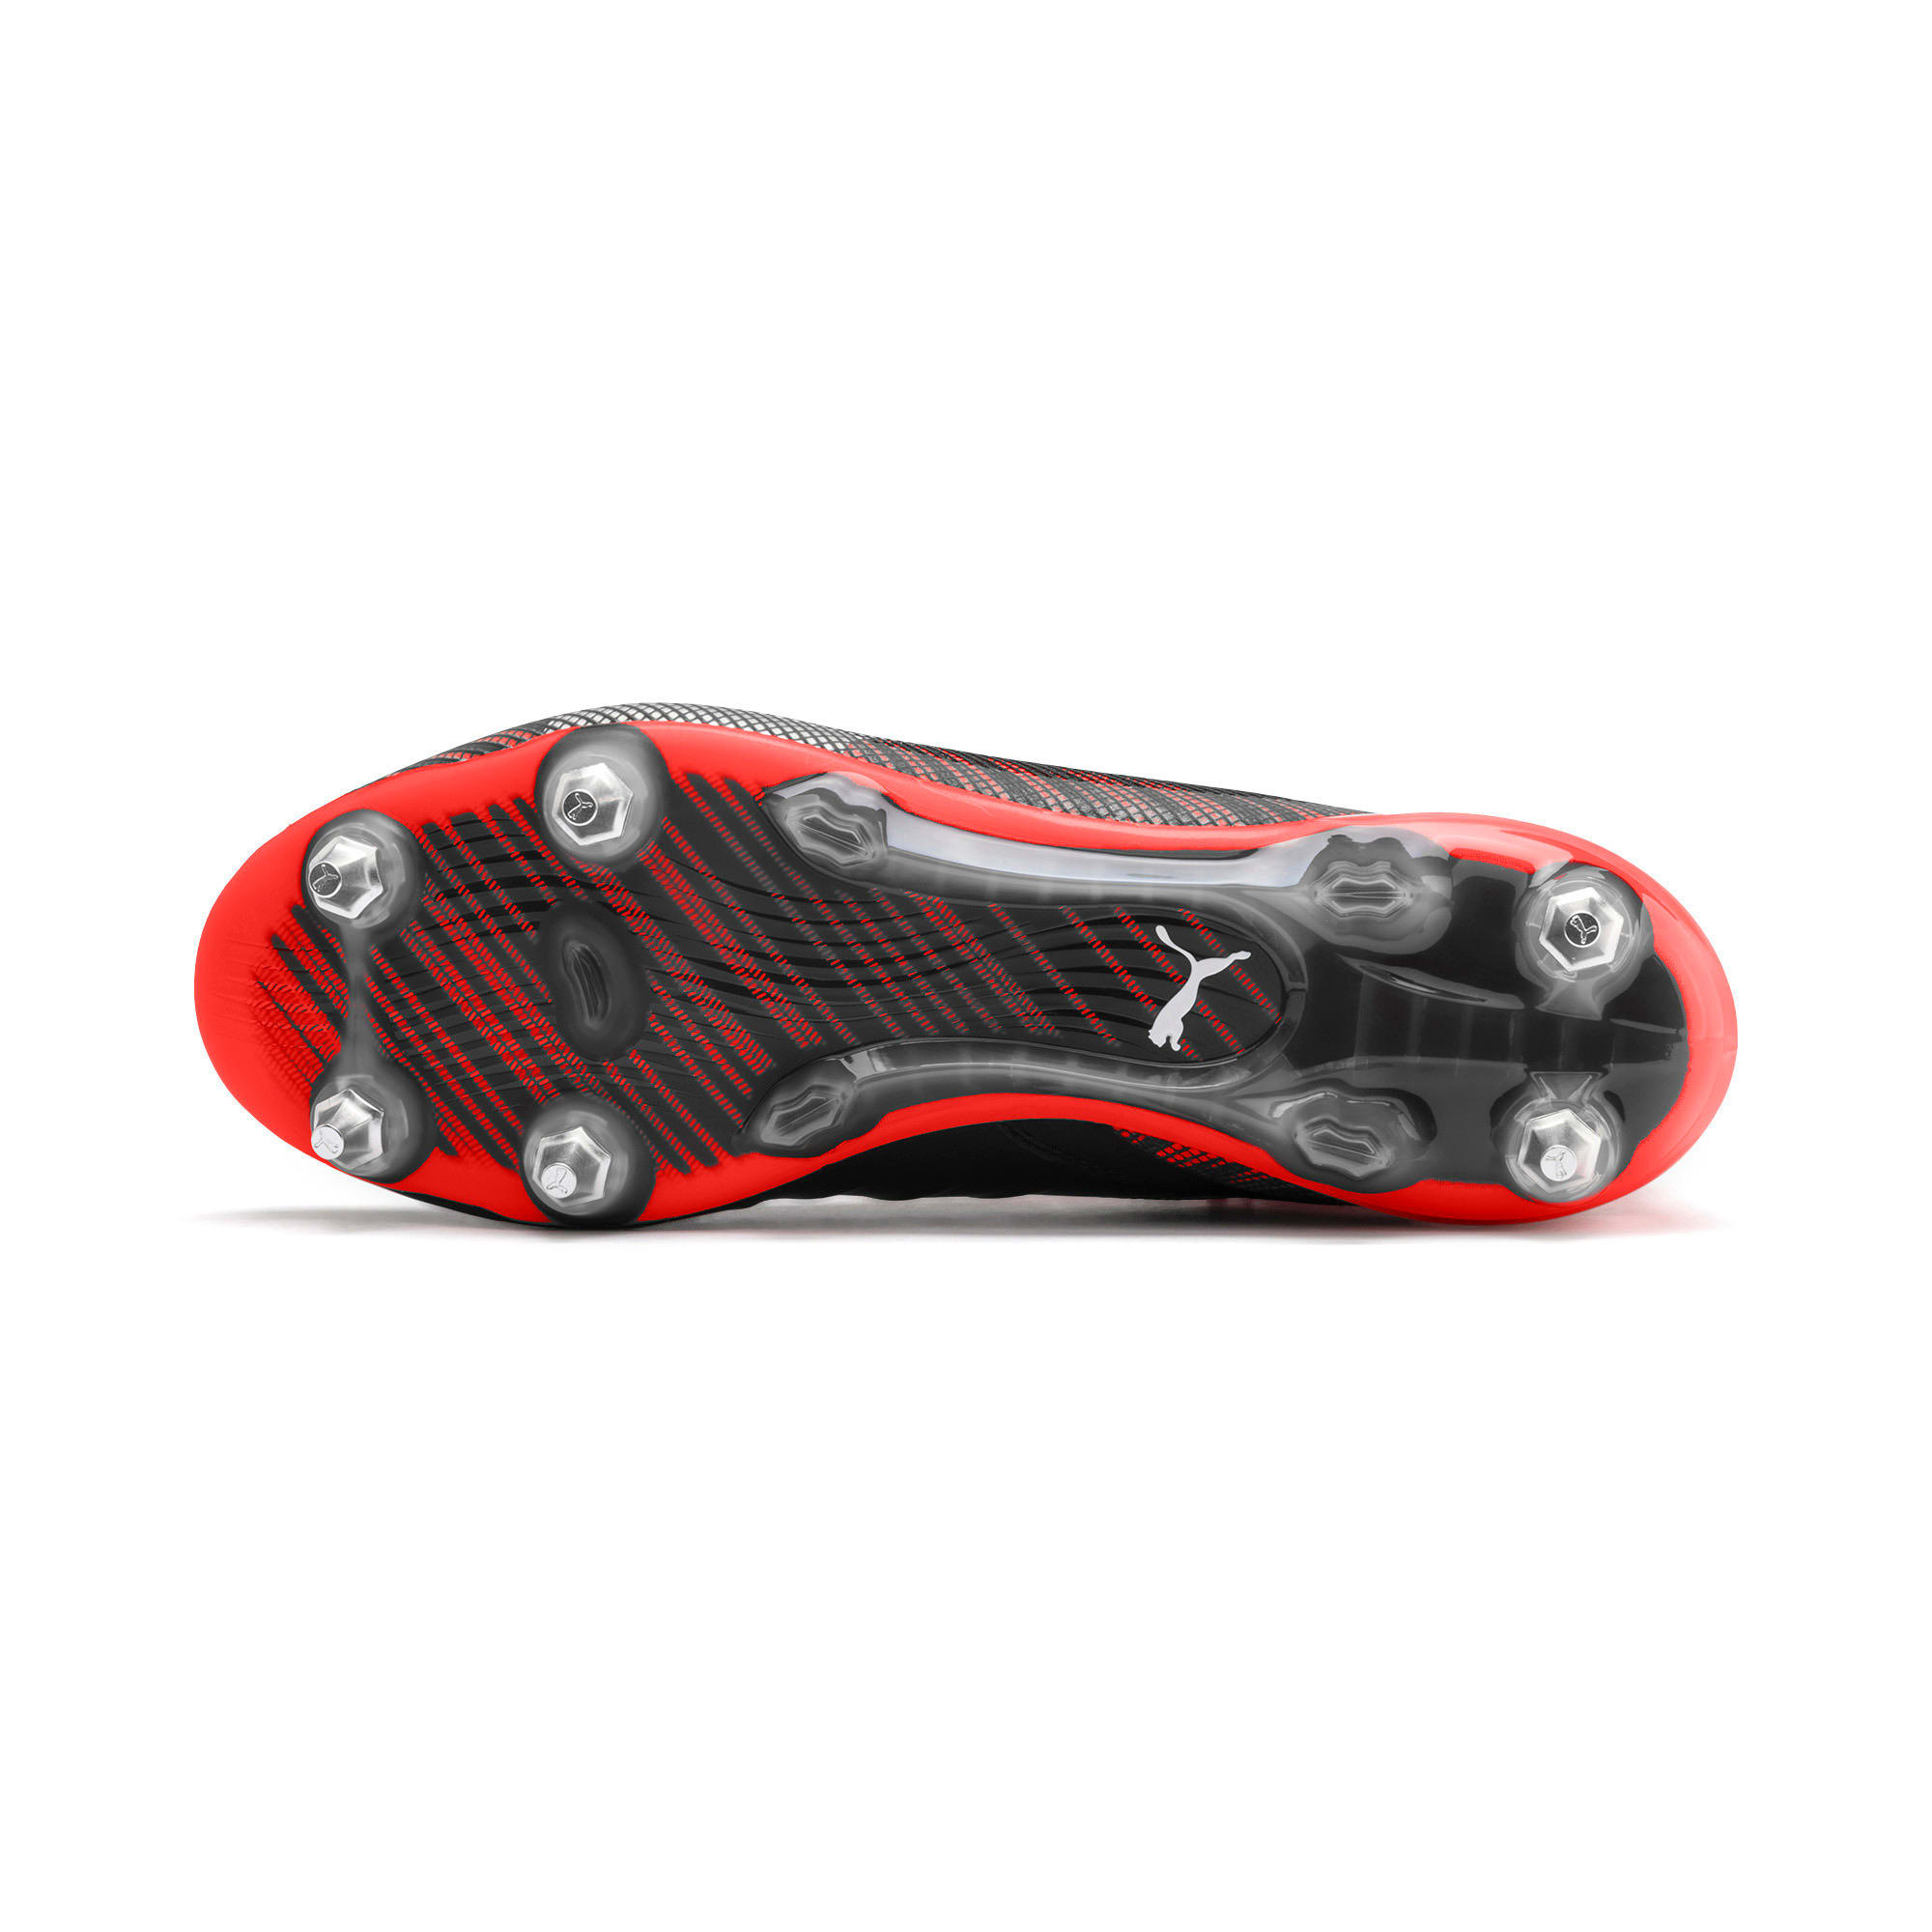 Thumbnail 5 of PUMA ONE 5.1 MxSG voetbalschoenen, Black-Nrgy Red-Aged Silver, medium